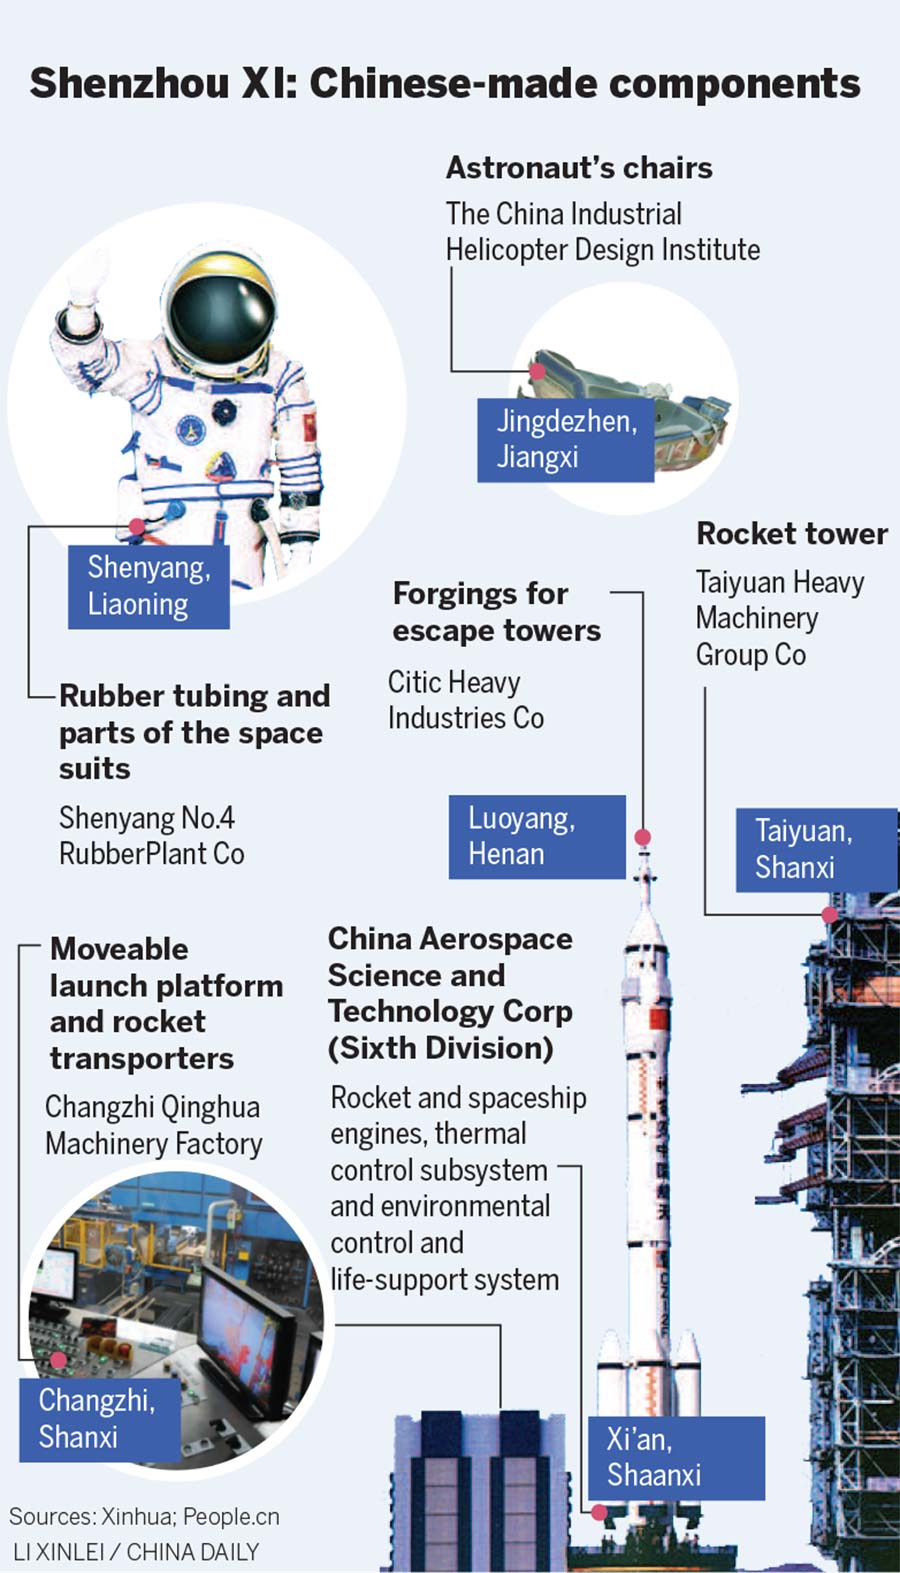 Spaceflight redefines 'Made in China' tag